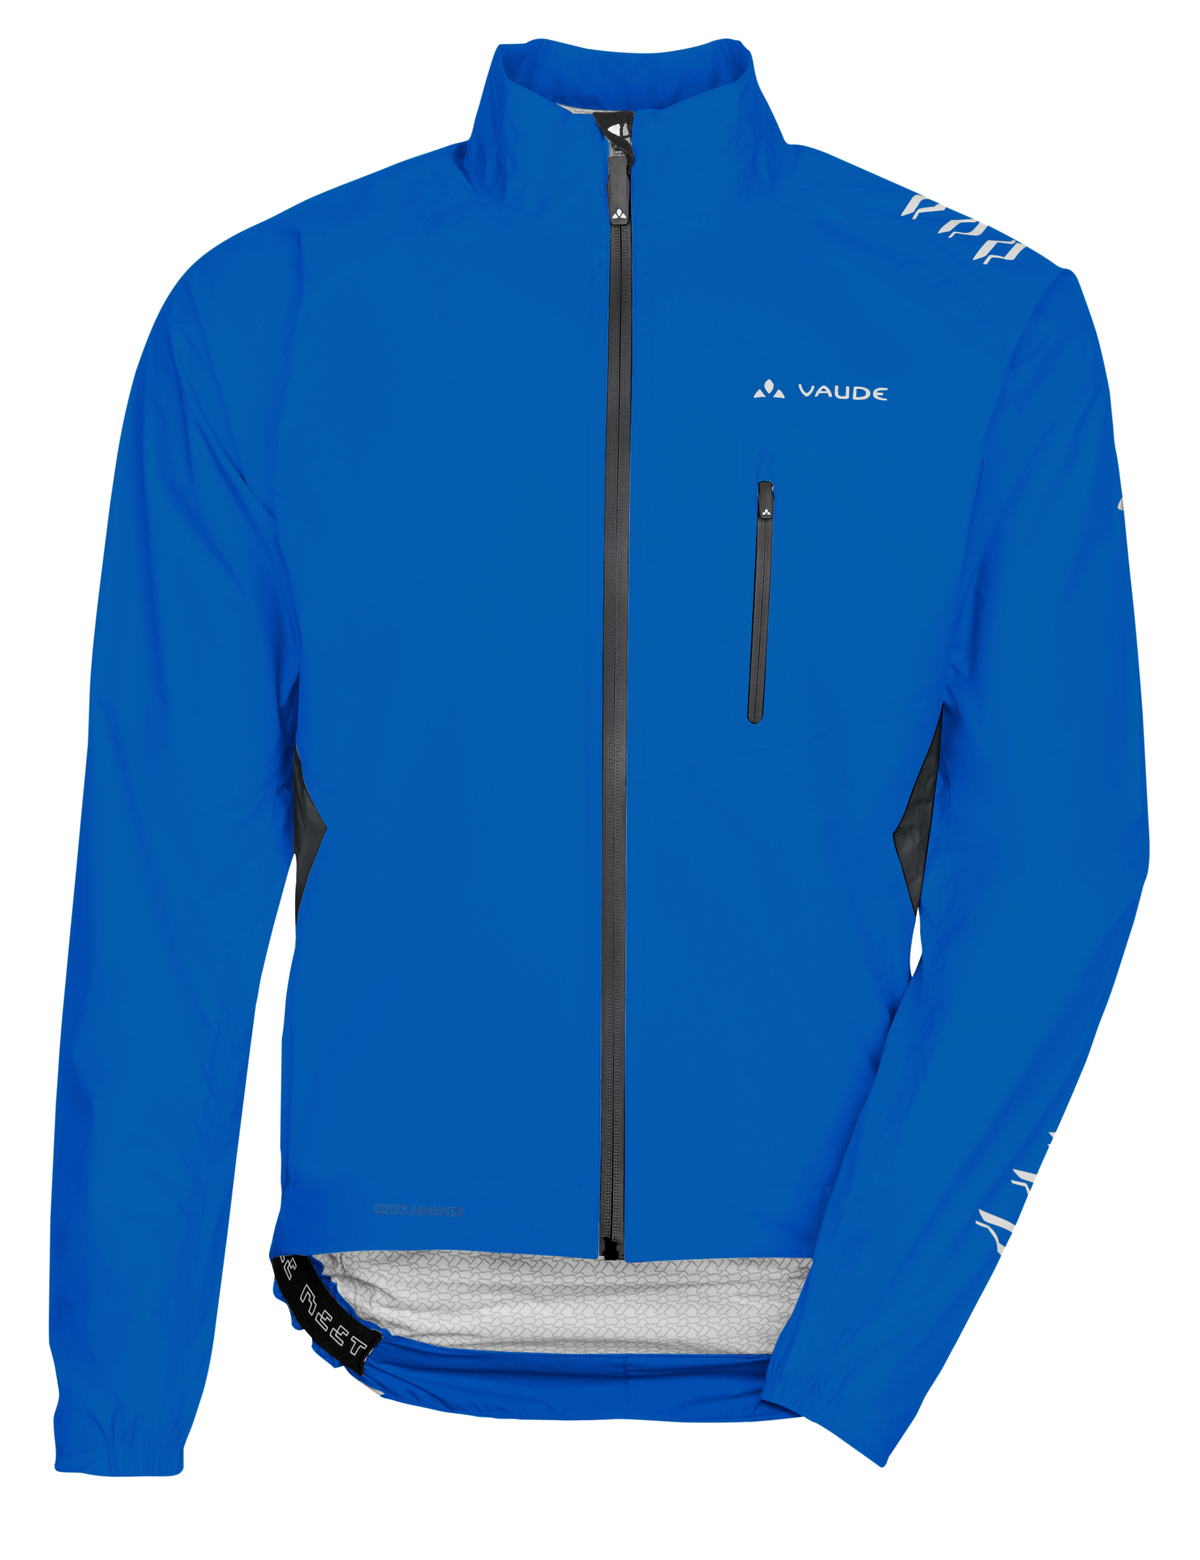 VAUDE Men´s Spray Jacket IV hydro blue Größe S - VAUDE Men´s Spray Jacket IV hydro blue Größe S